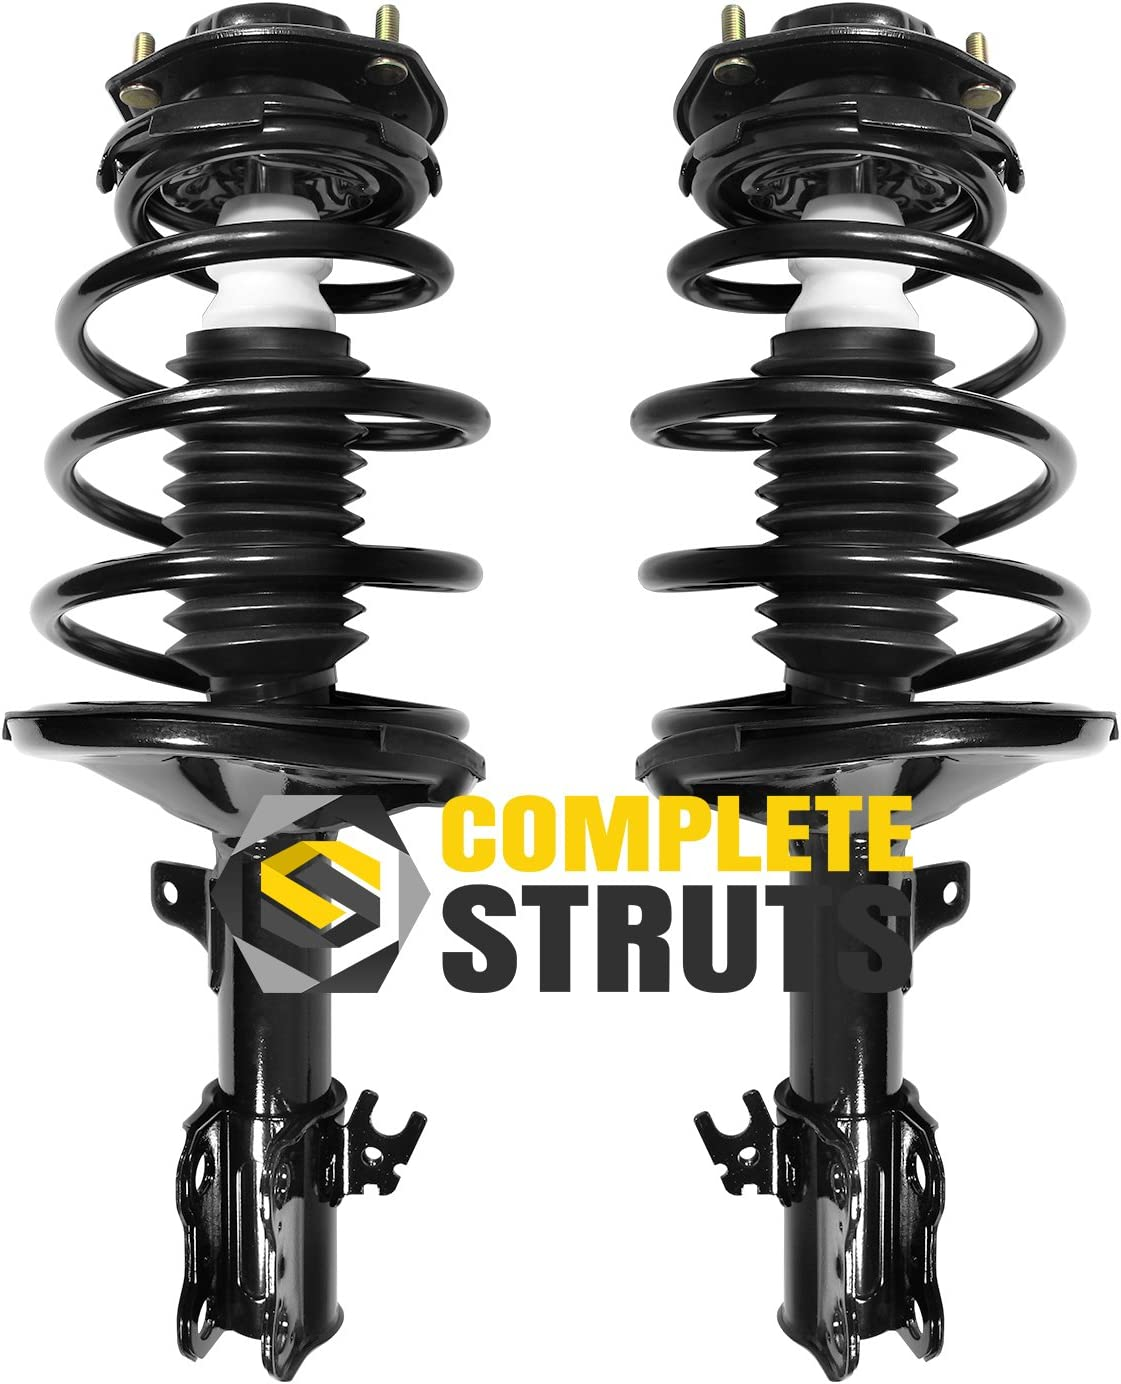 Front Pair Quick Complete Struts /& Coil Springs For 1999-2003 Toyota Solara 4CYL